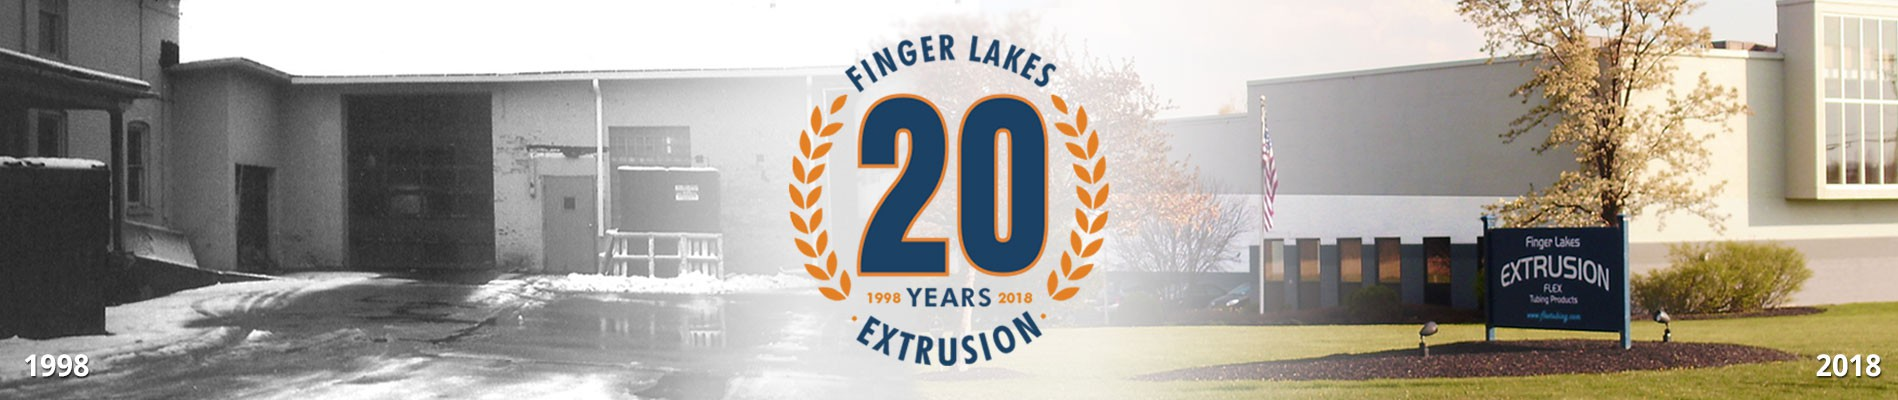 Celebrate 20 years of Finger Lakes Extrusion Banner